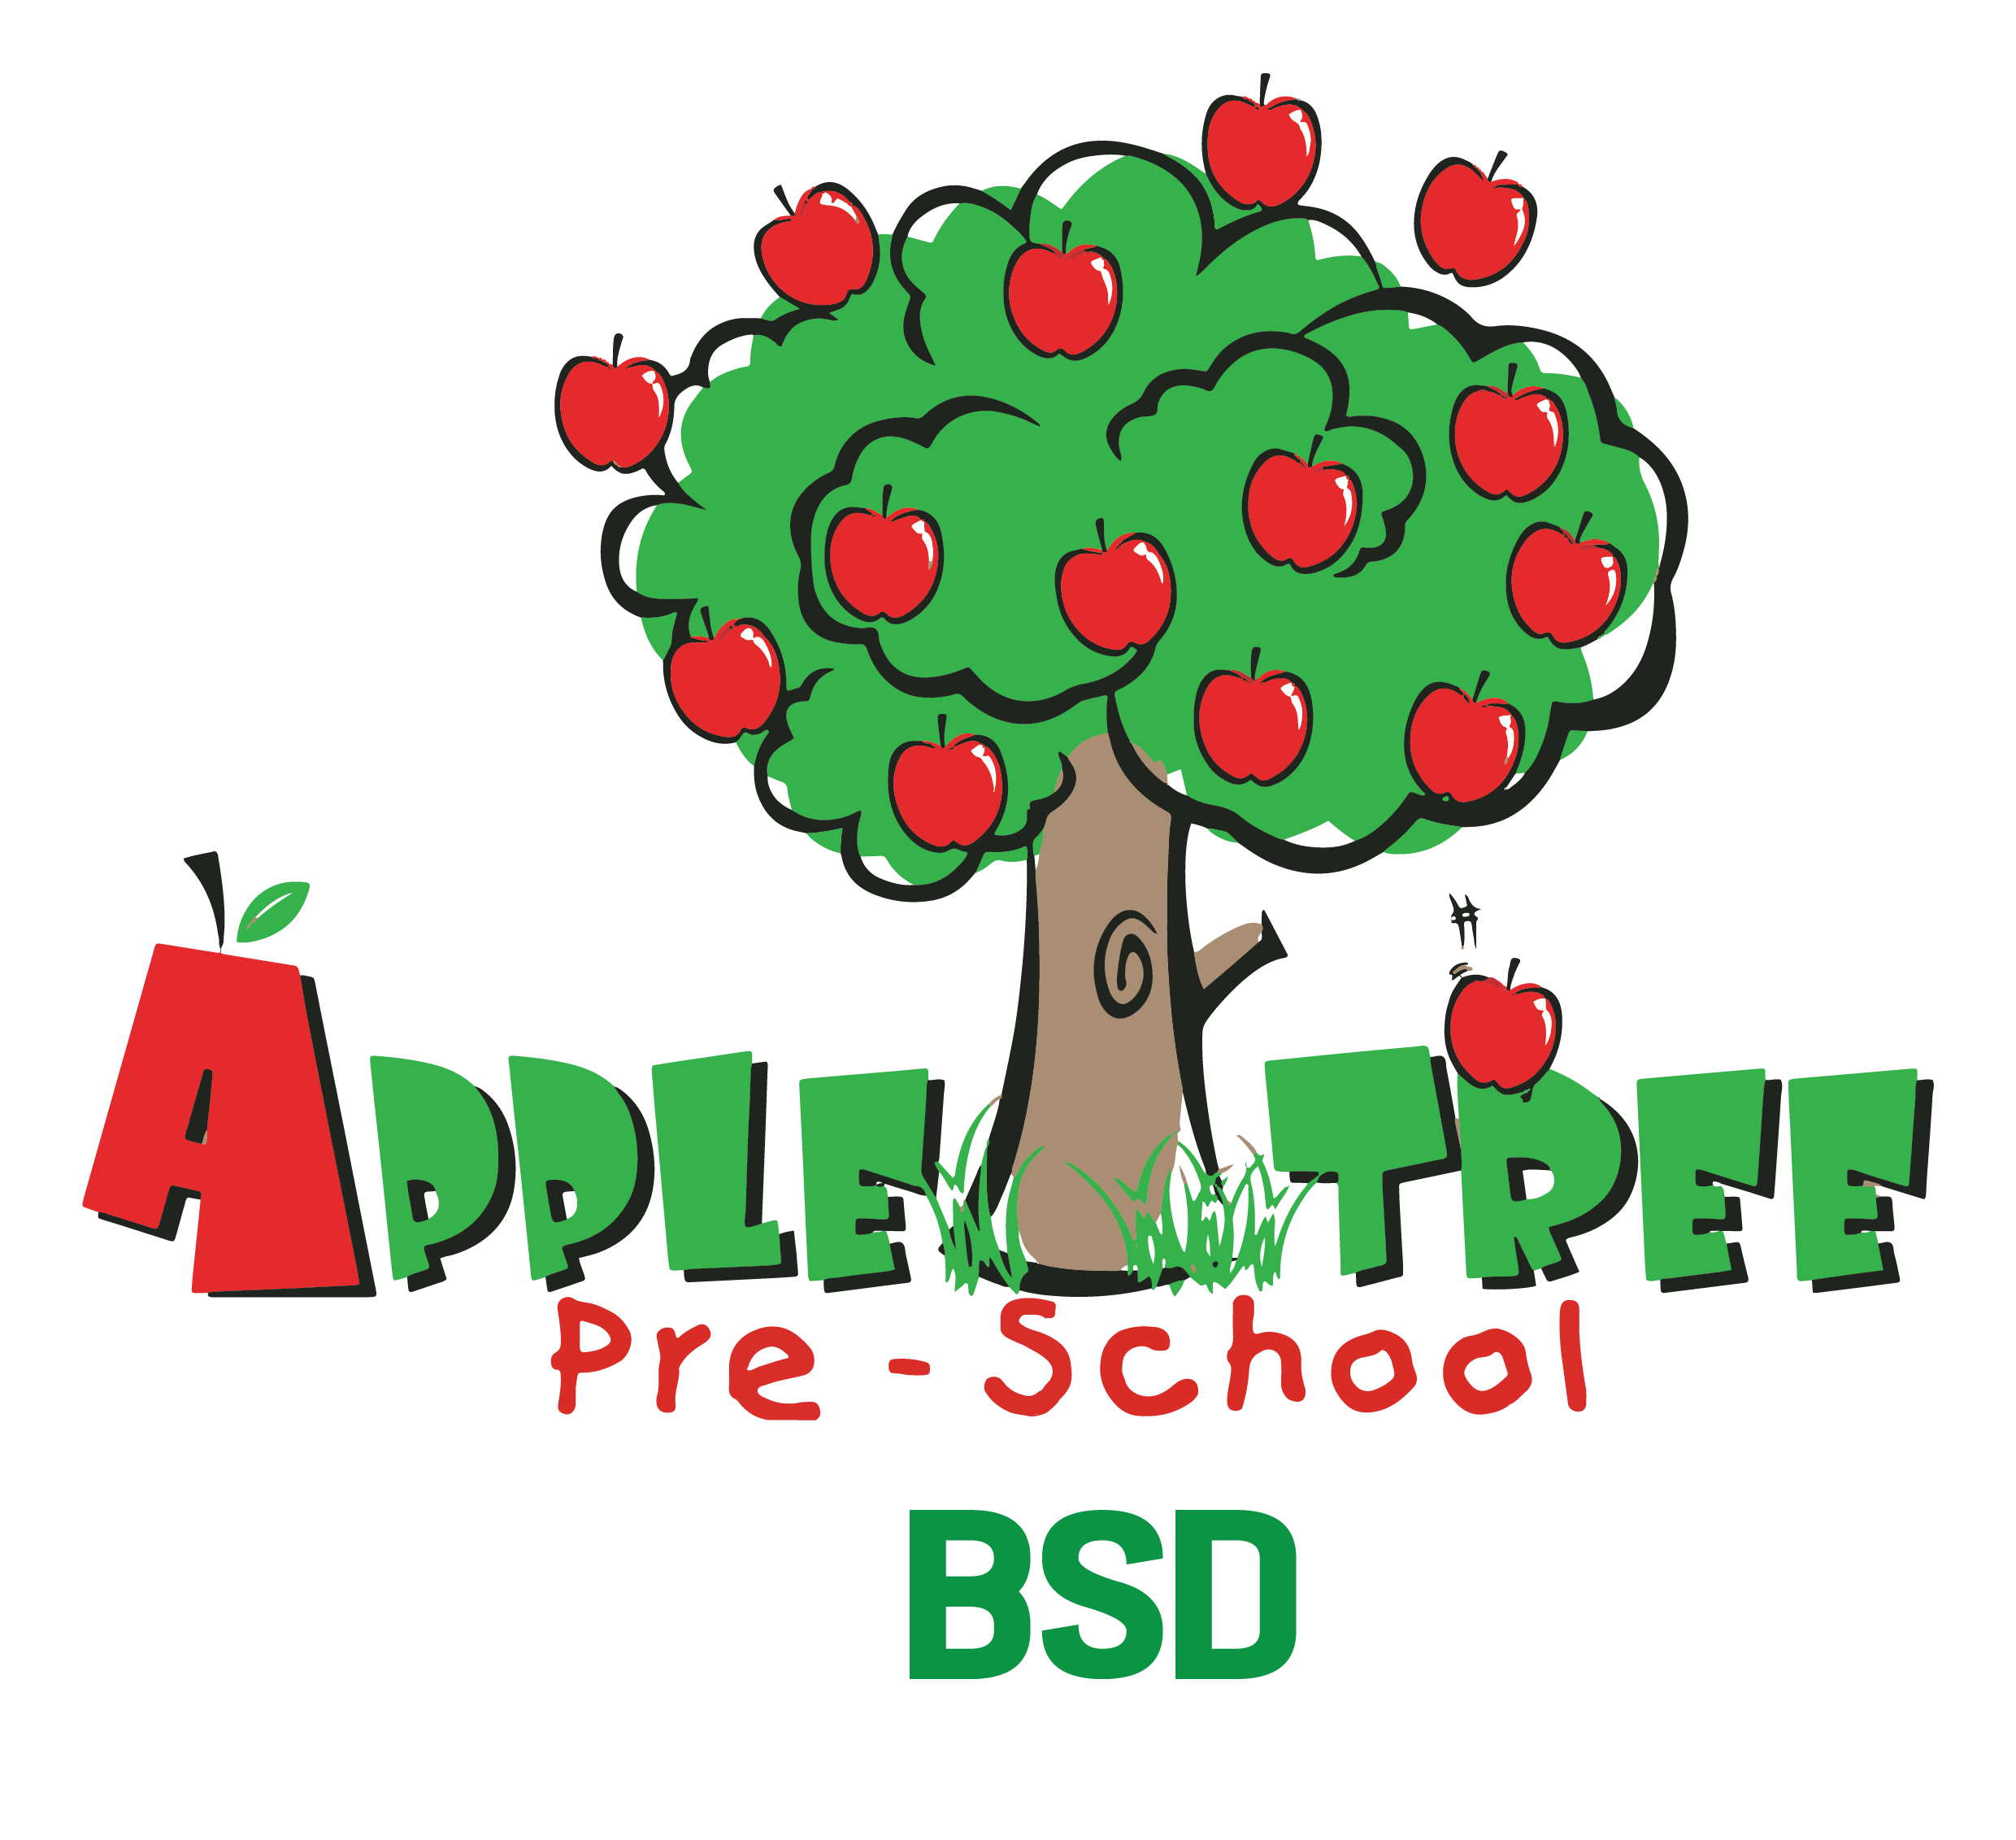 APPLE TREE PRE-SCHOOL BSD